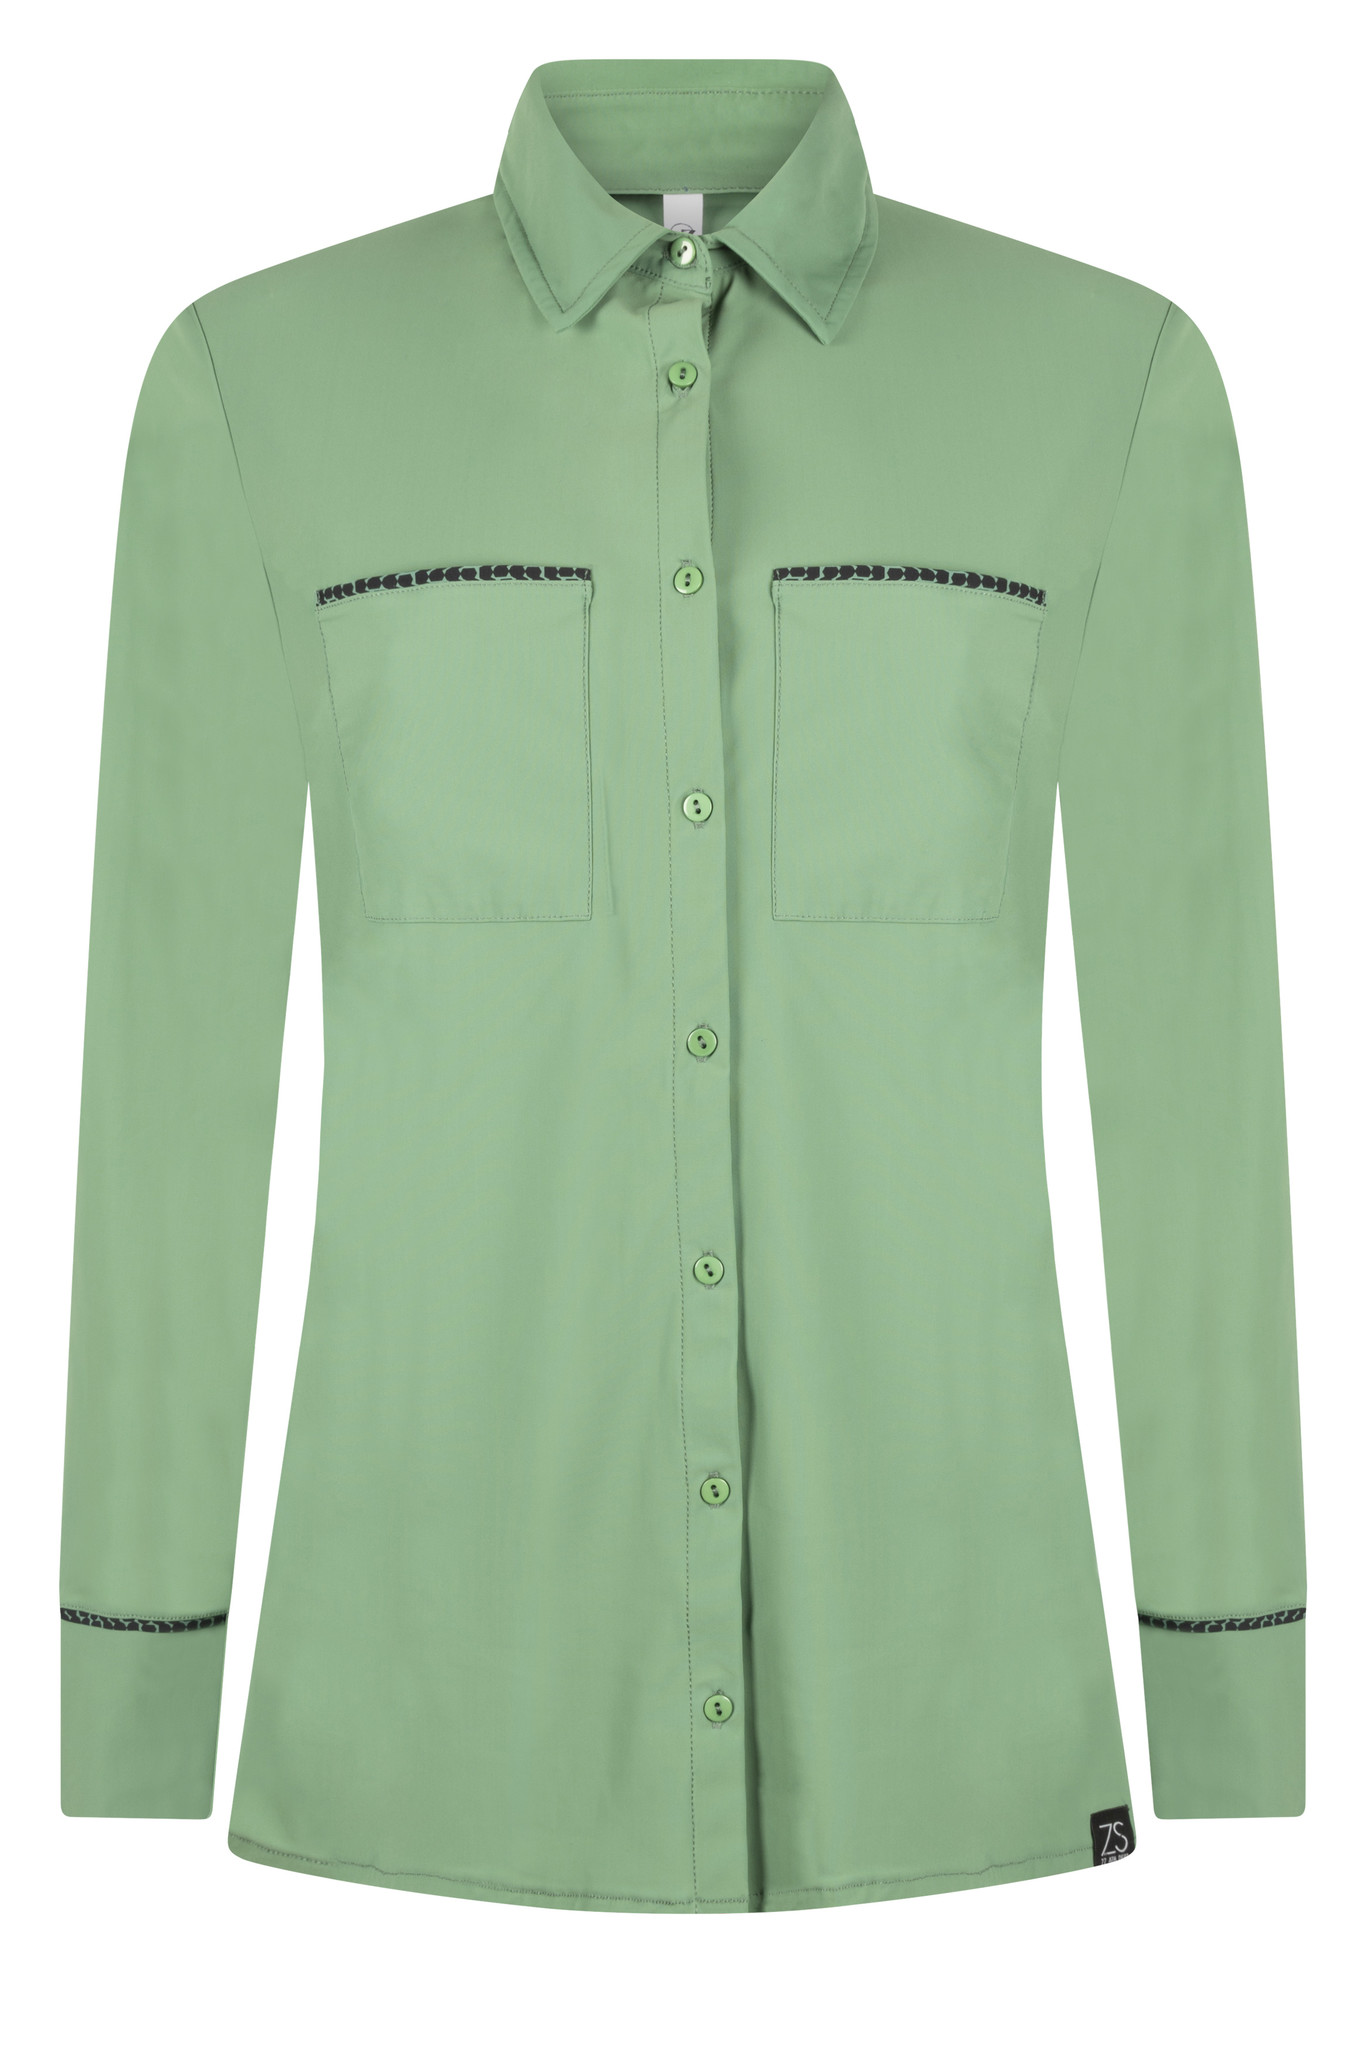 Zoso 215 Vera Travel blouse with piping  green/black